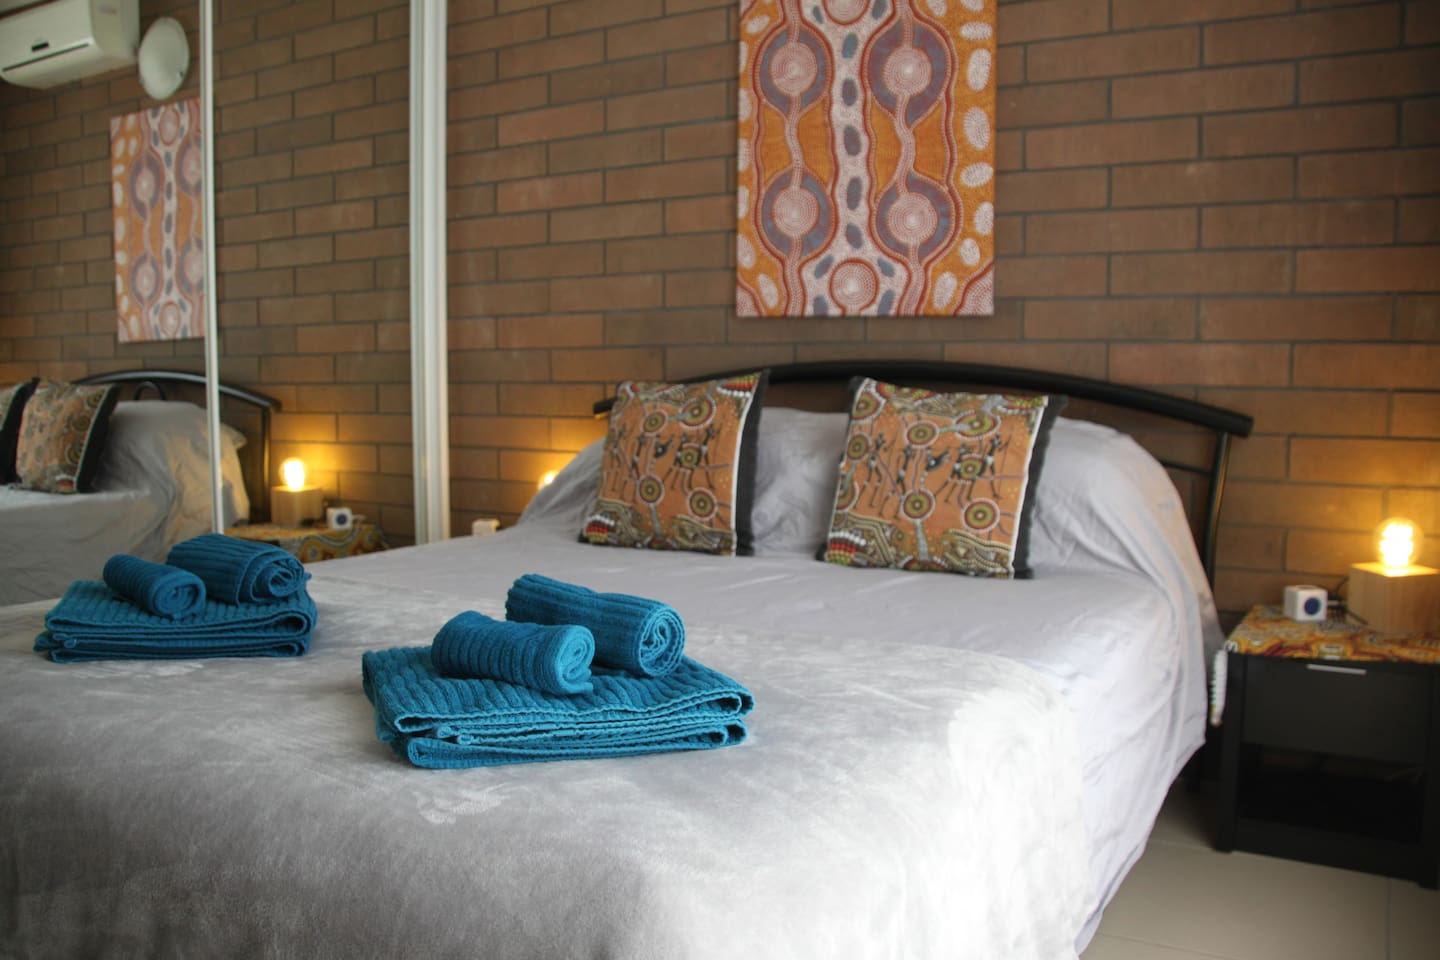 Your comfortable queen sized bed in your privat room.